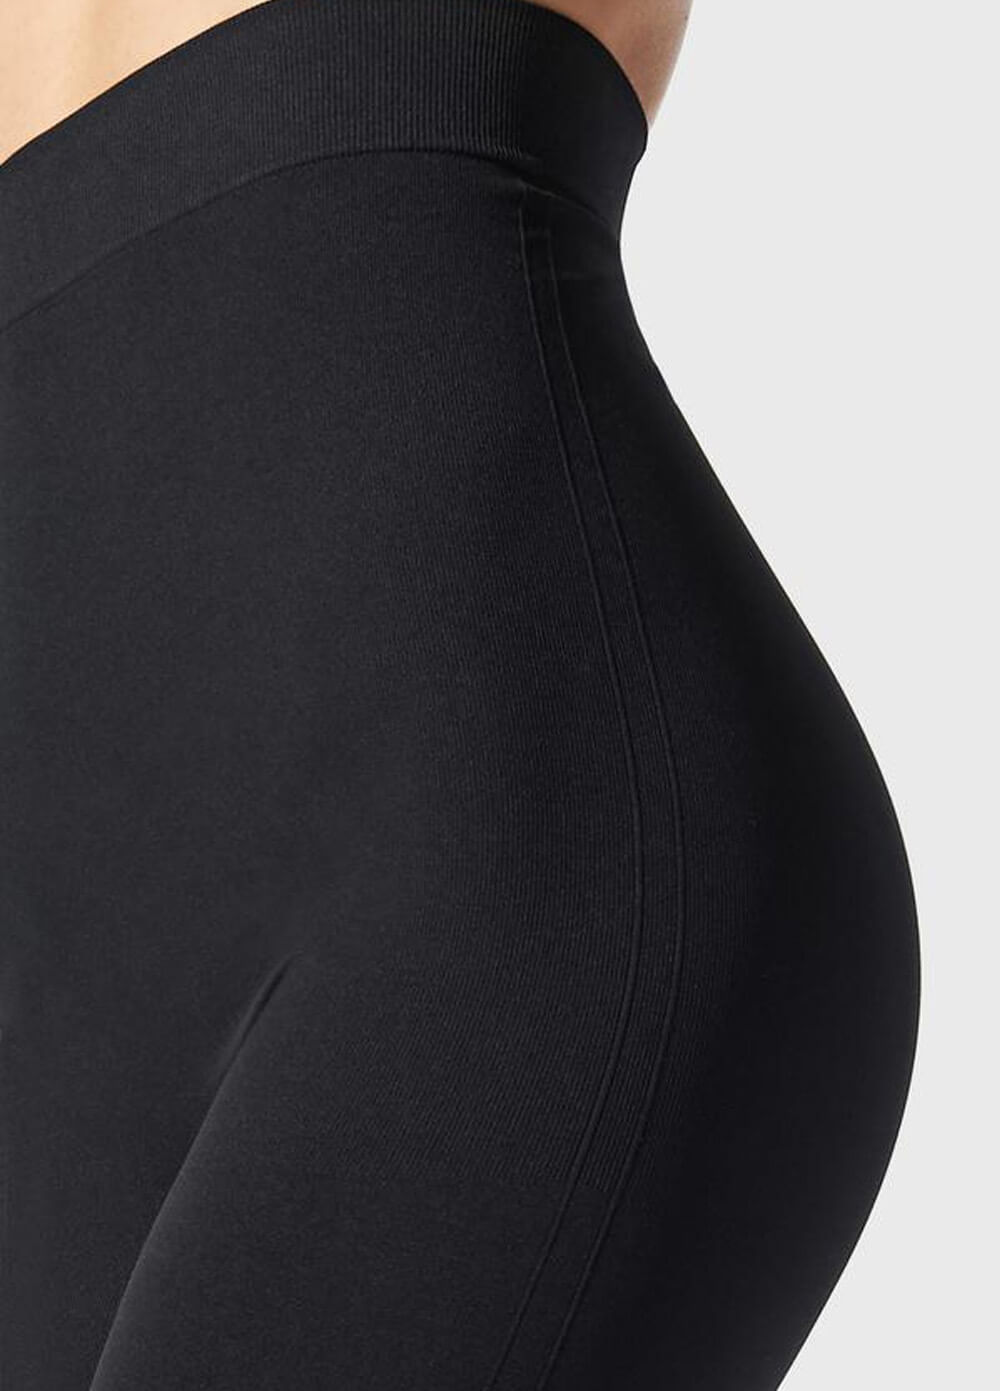 High Waist Postpartum Support Leggings in Black by Blanqi